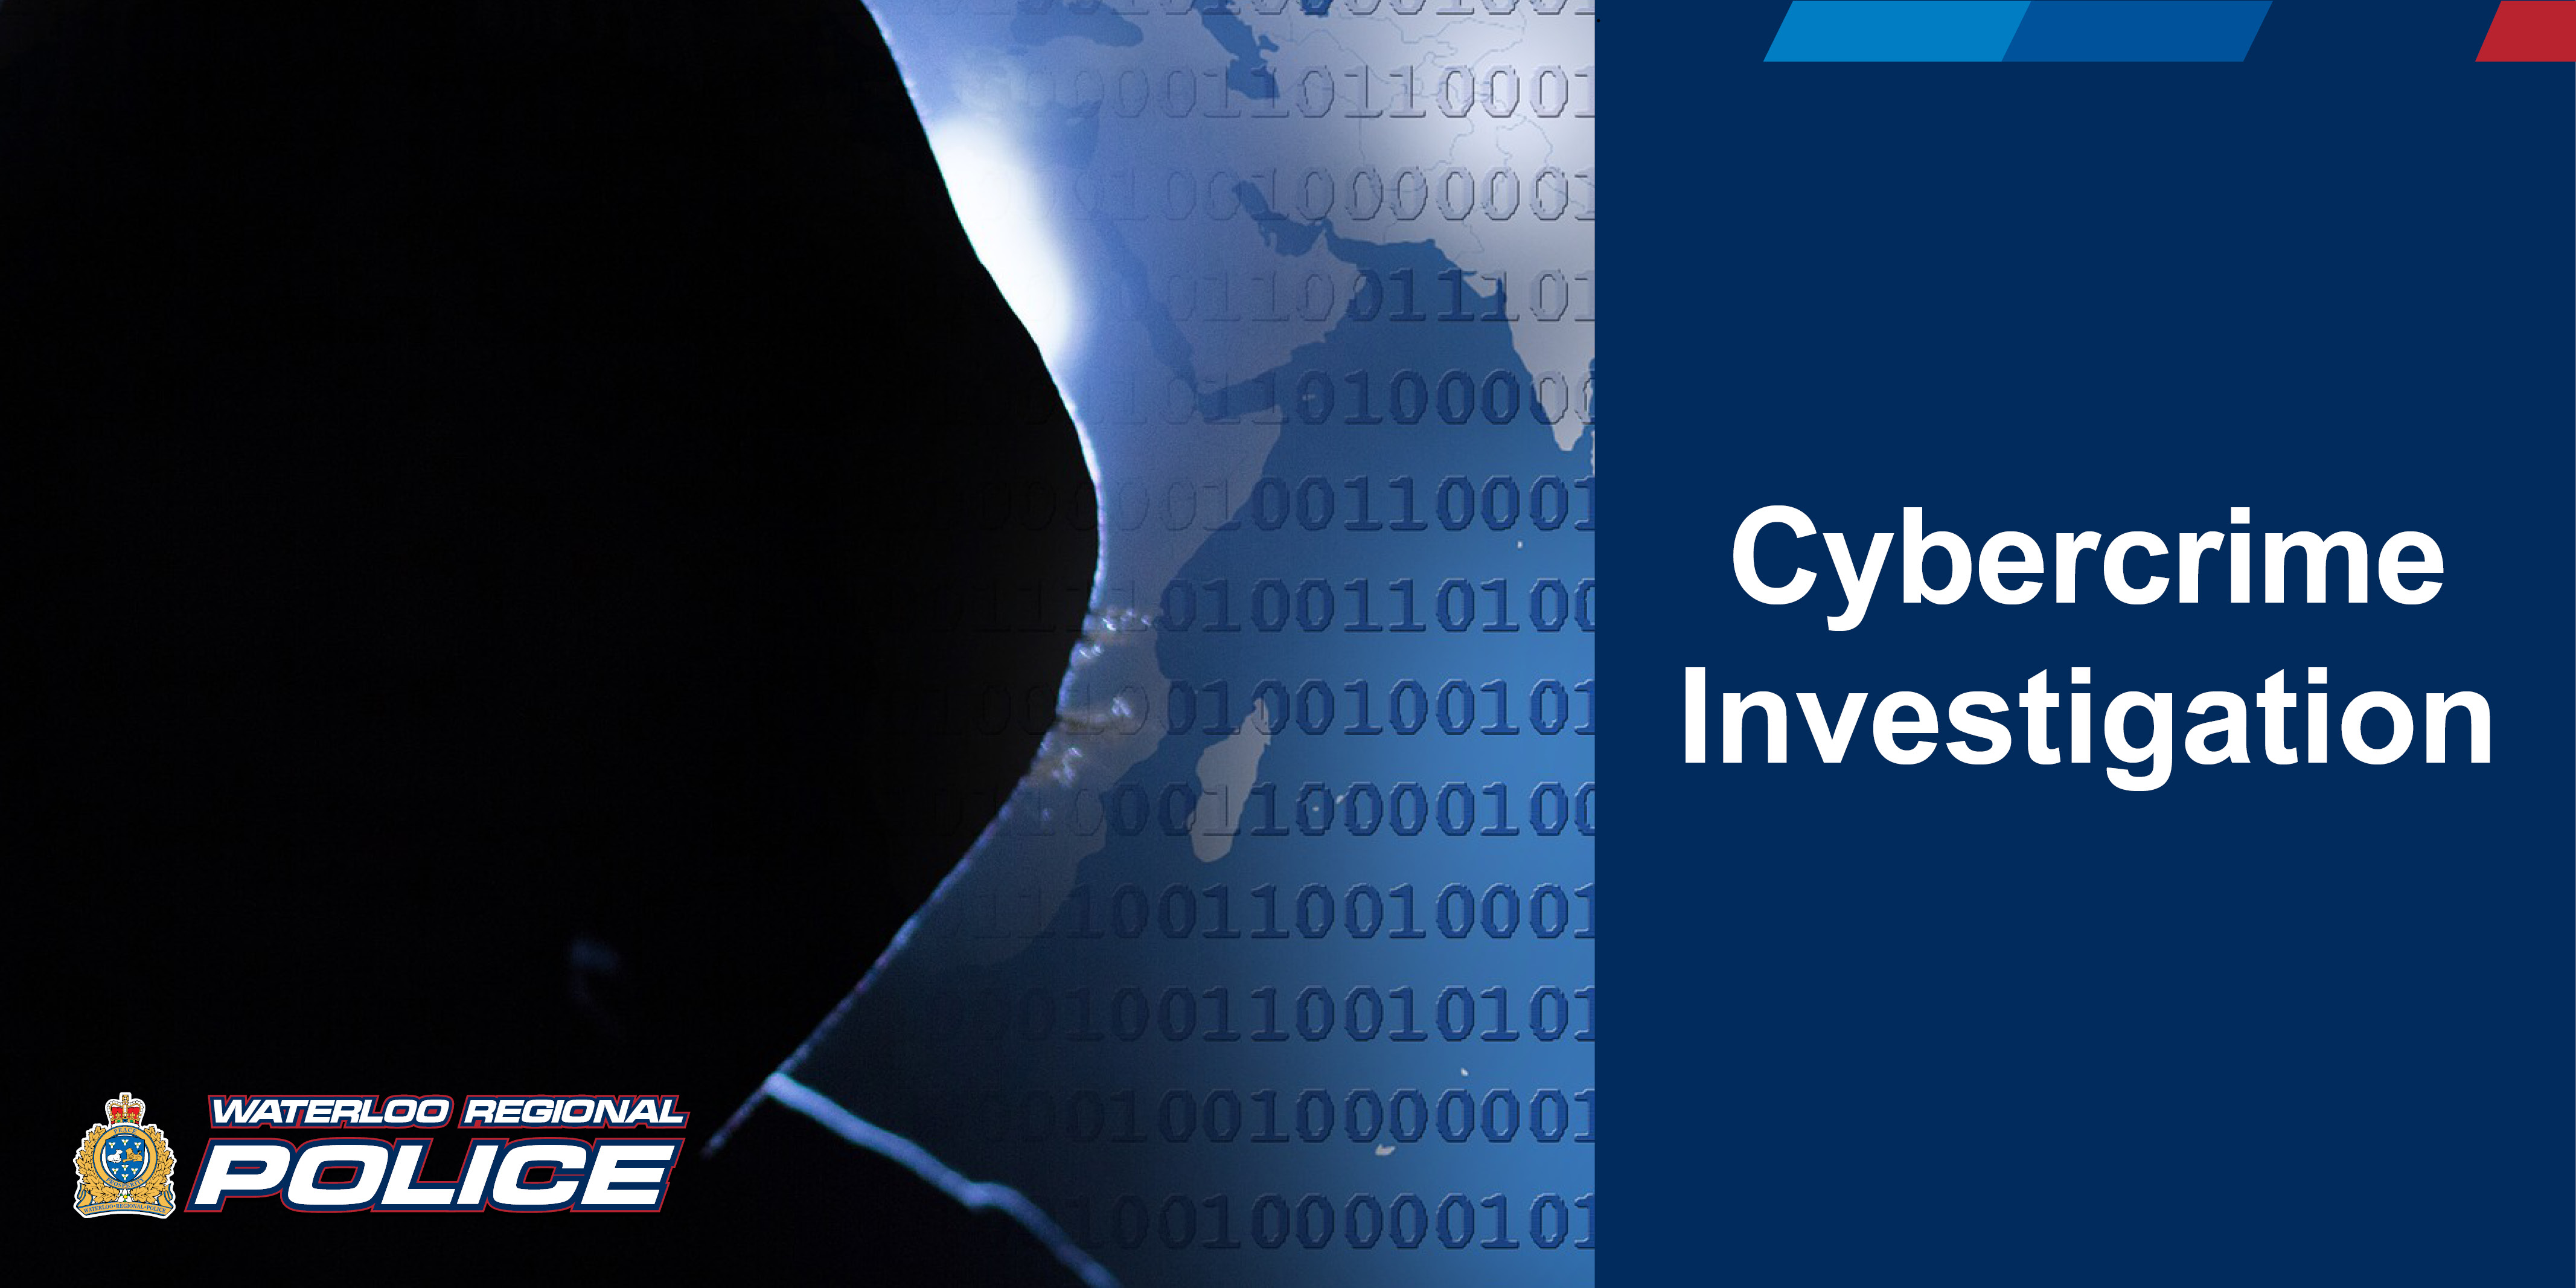 Media Release - Cybercrime Shareable